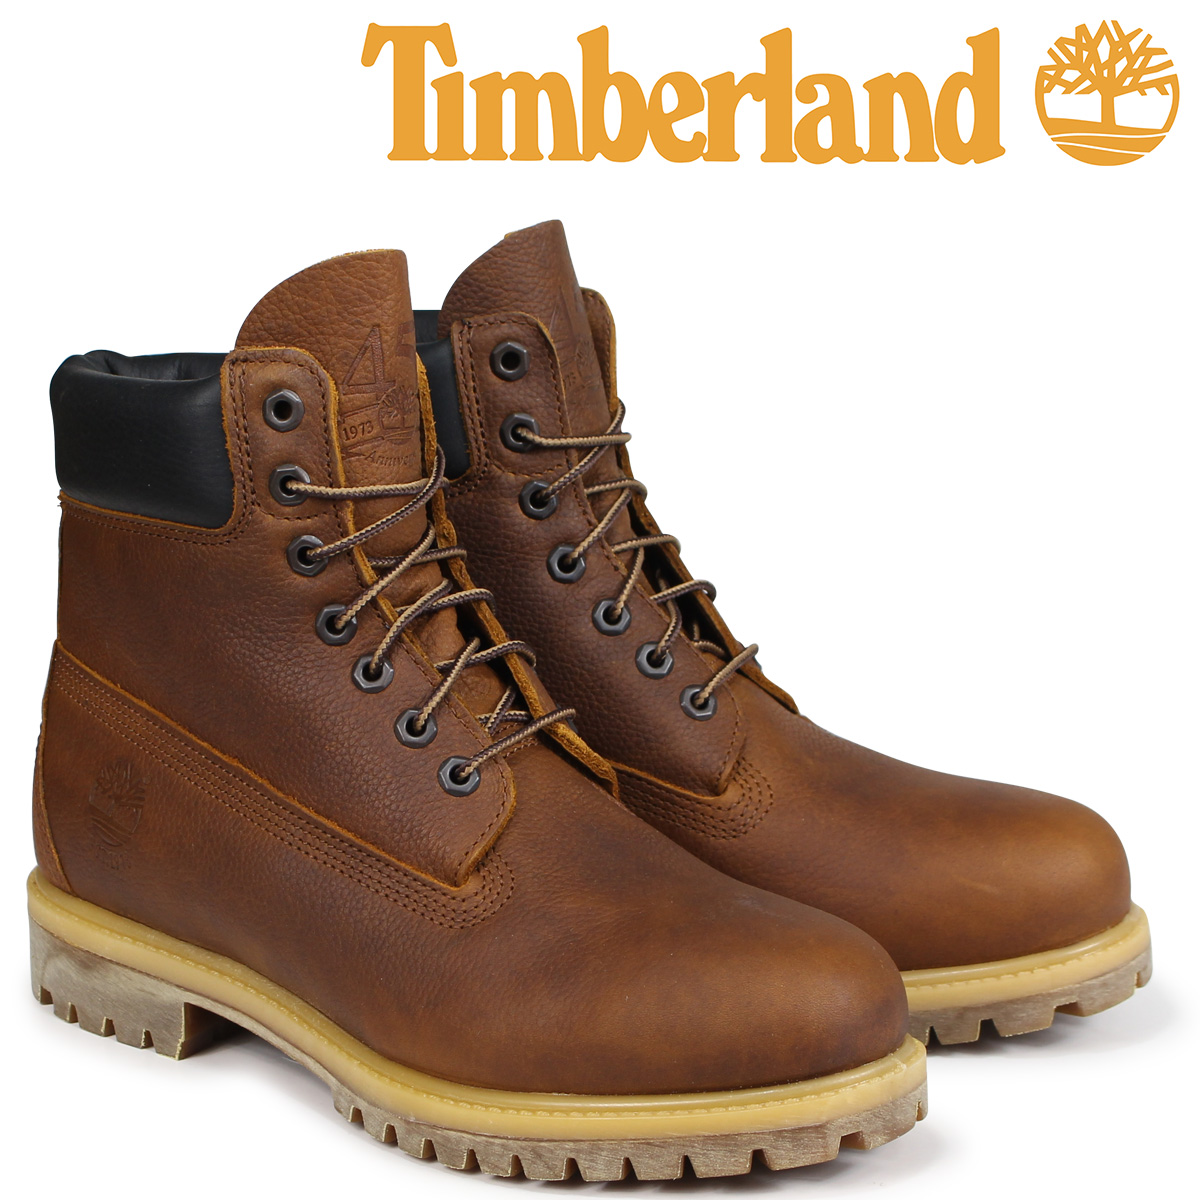 532c5a6c50f6 6 inches of Timberland boots men Timberland HERITAGE 6-INCH PREMIUM BOOTS  A1R18 W Wise brown  load planned Shinnyu load in reservation product 9 5 ...